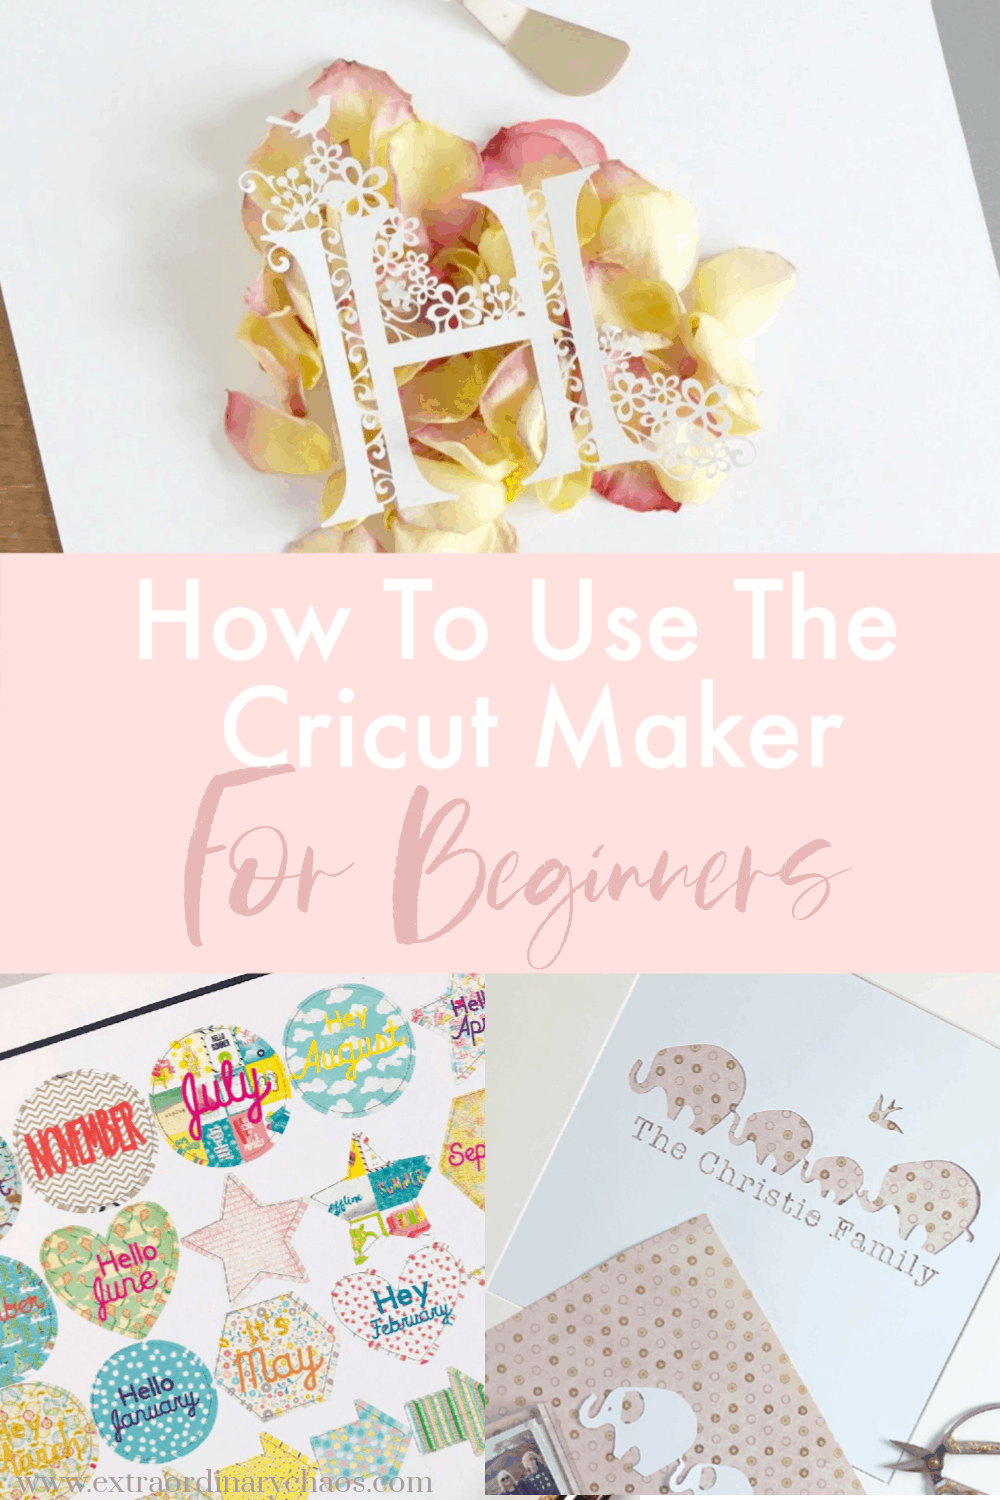 Cricut Maker For Beginners, How To Use